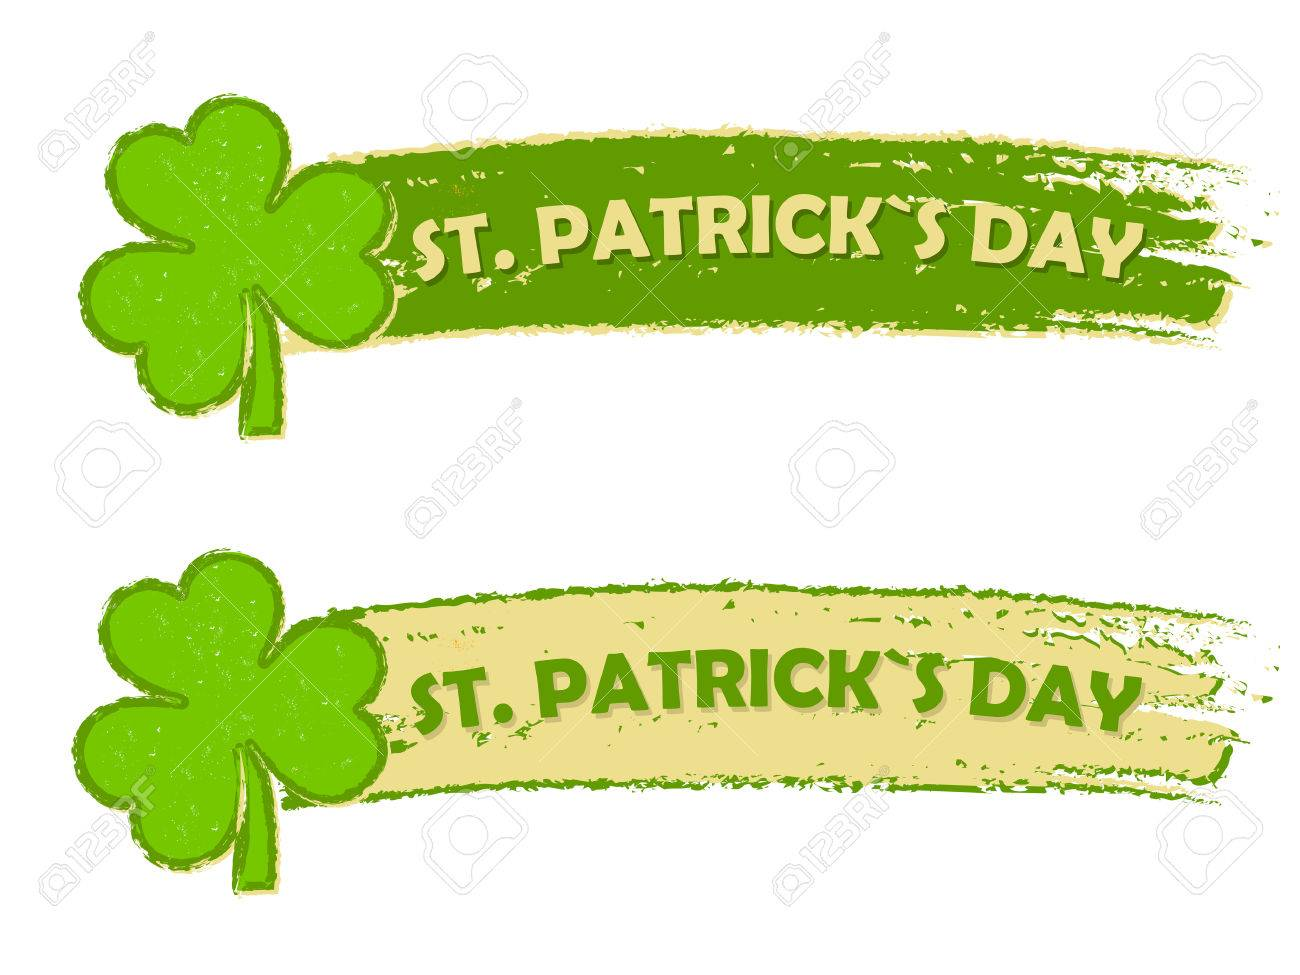 happy st patrick u0027s day text in two green drawn banners with